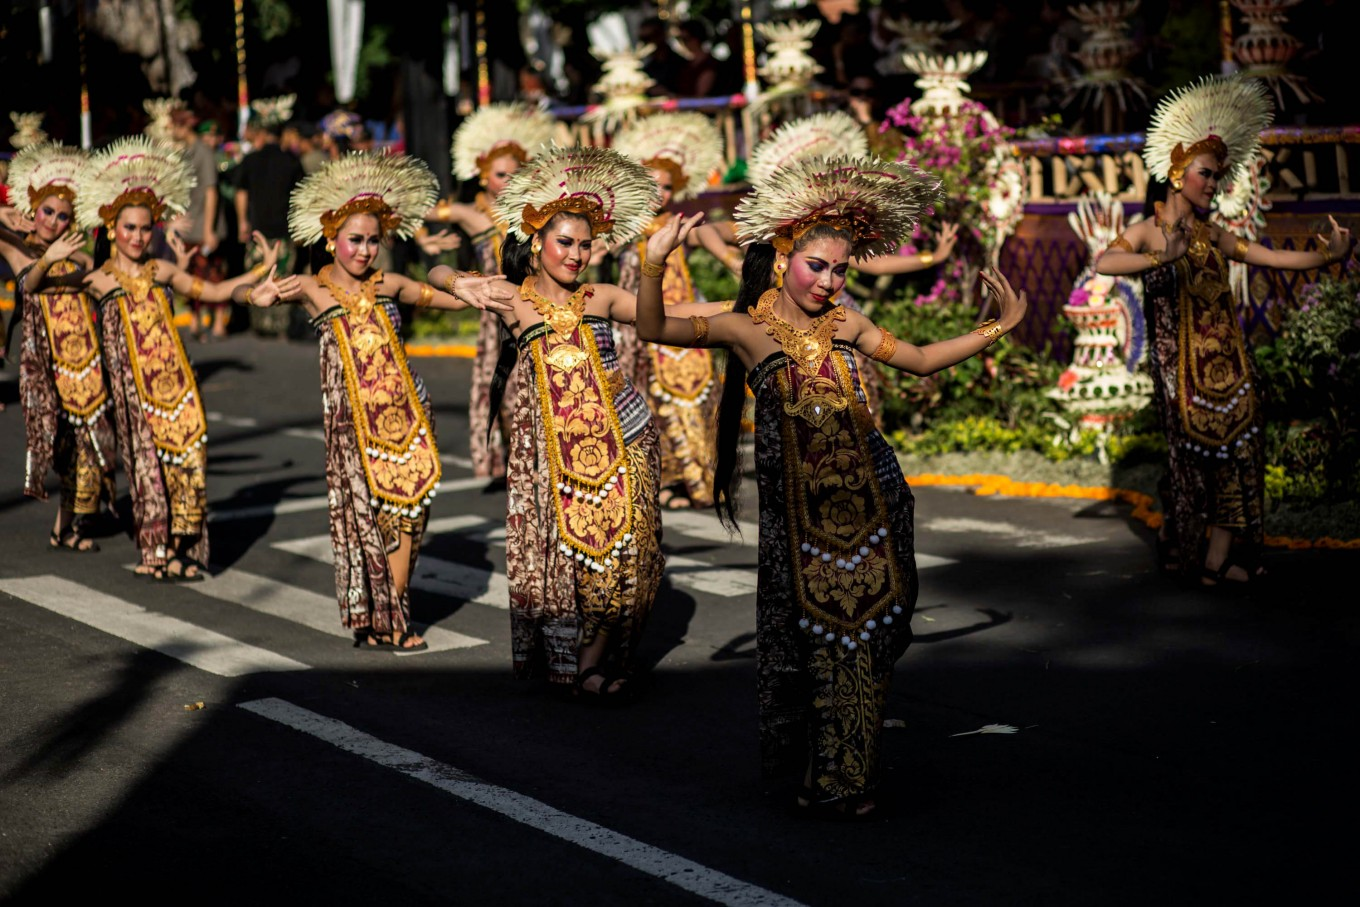 Balinese dancers perform a colossal dance at Bajra Sandhi in Denpasar. JP/Agung Parameswara